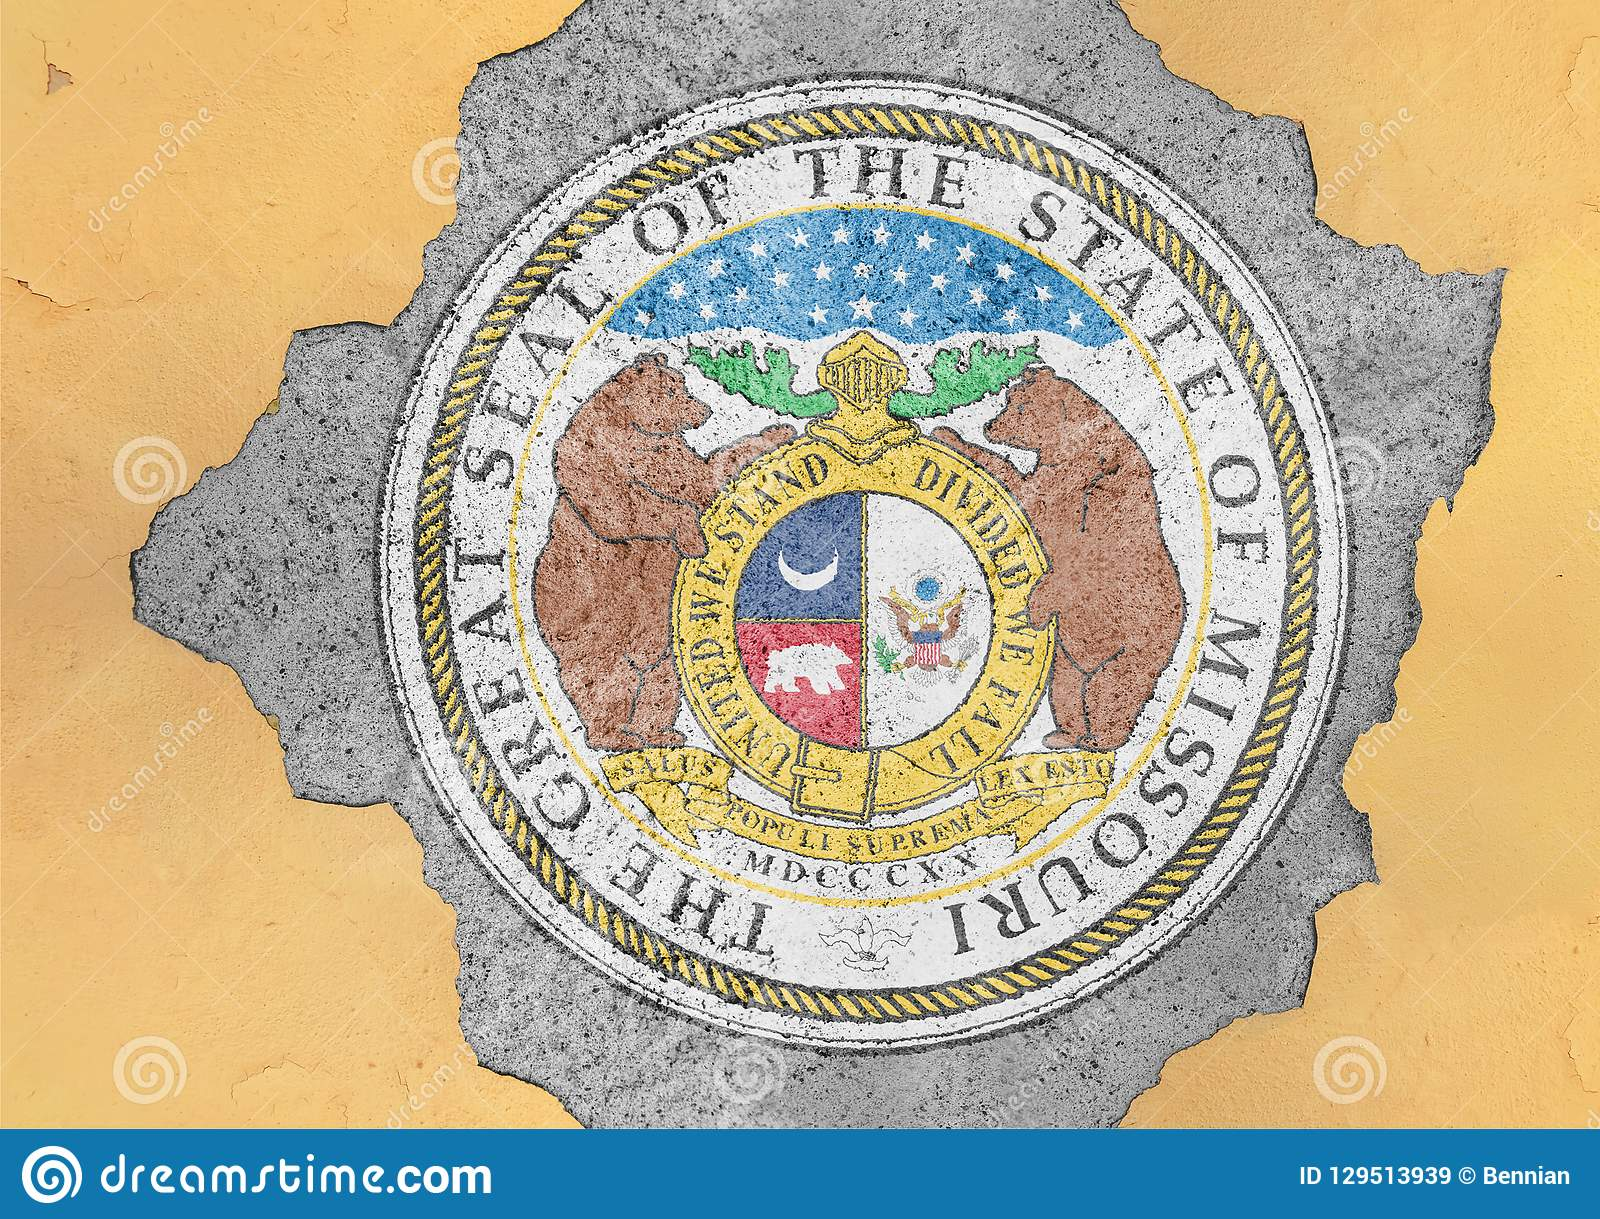 US state Missouri seal flag painted on concrete hole and cracked wall